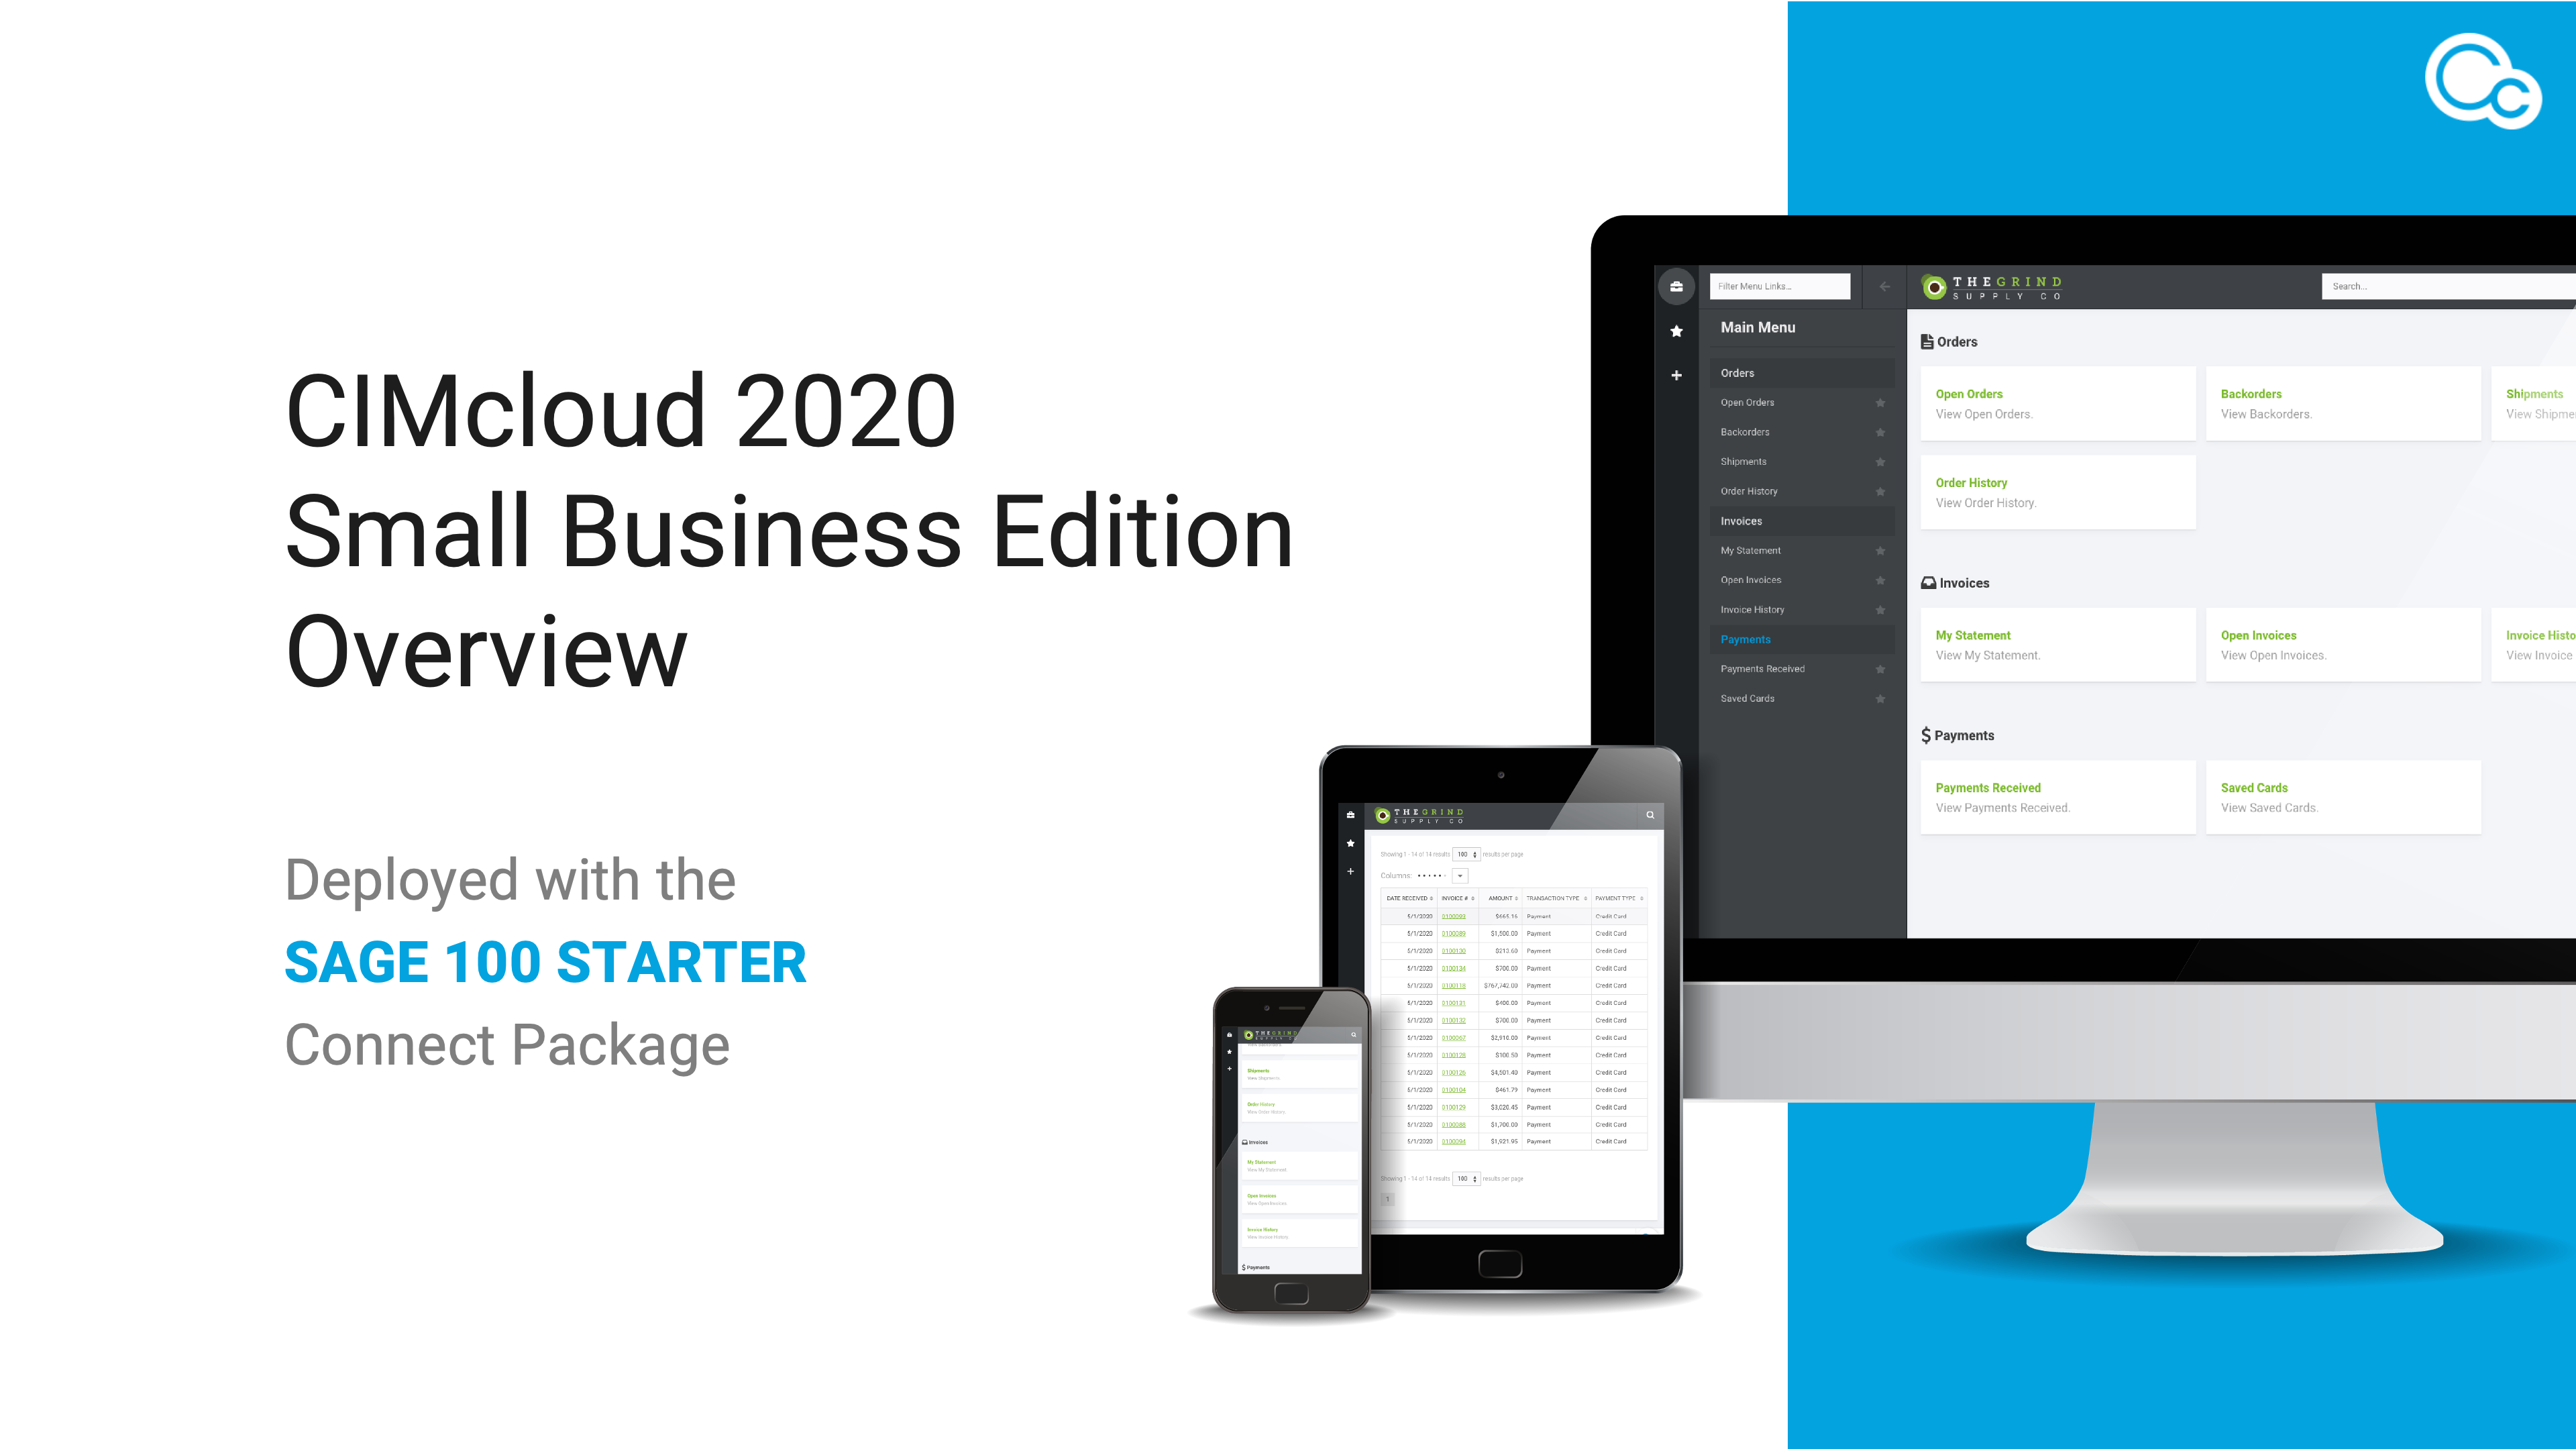 CIMcloud 2020 SBE Overview